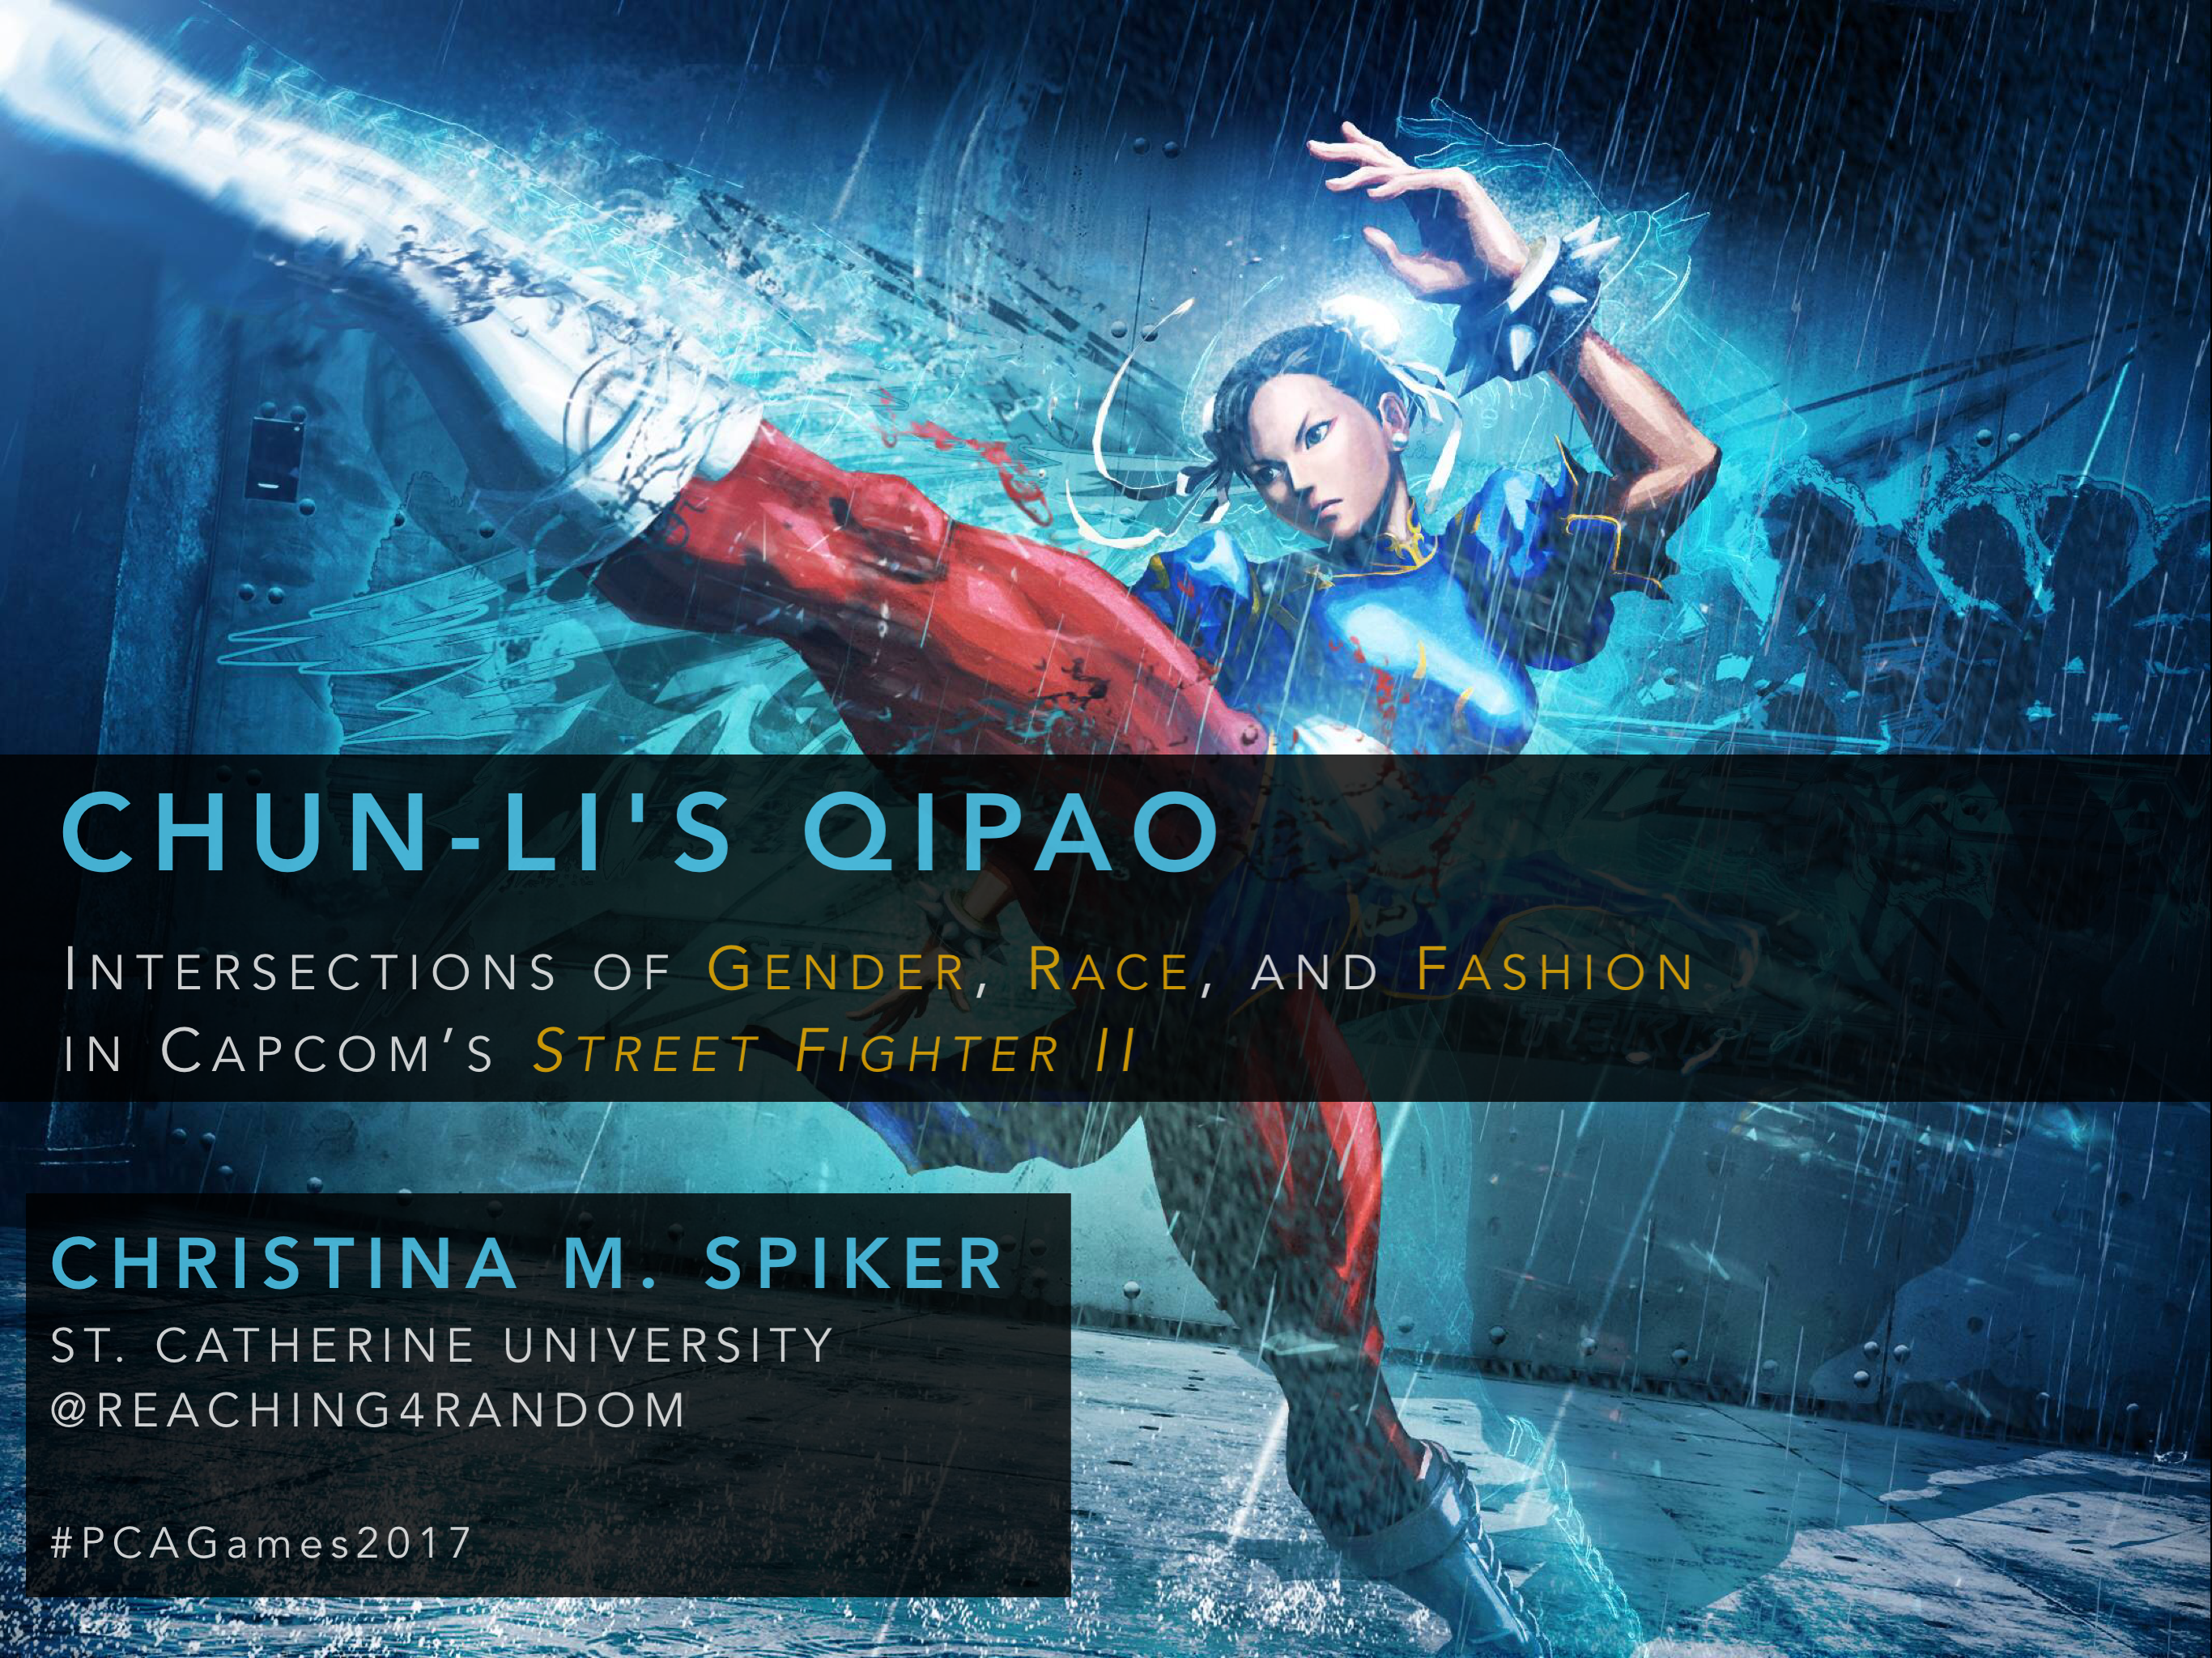 Presentation // Chun-Li's Qipao: Intersections of Gender, Race, and Fashion in Capcom's <em>Street Fighter II</em>